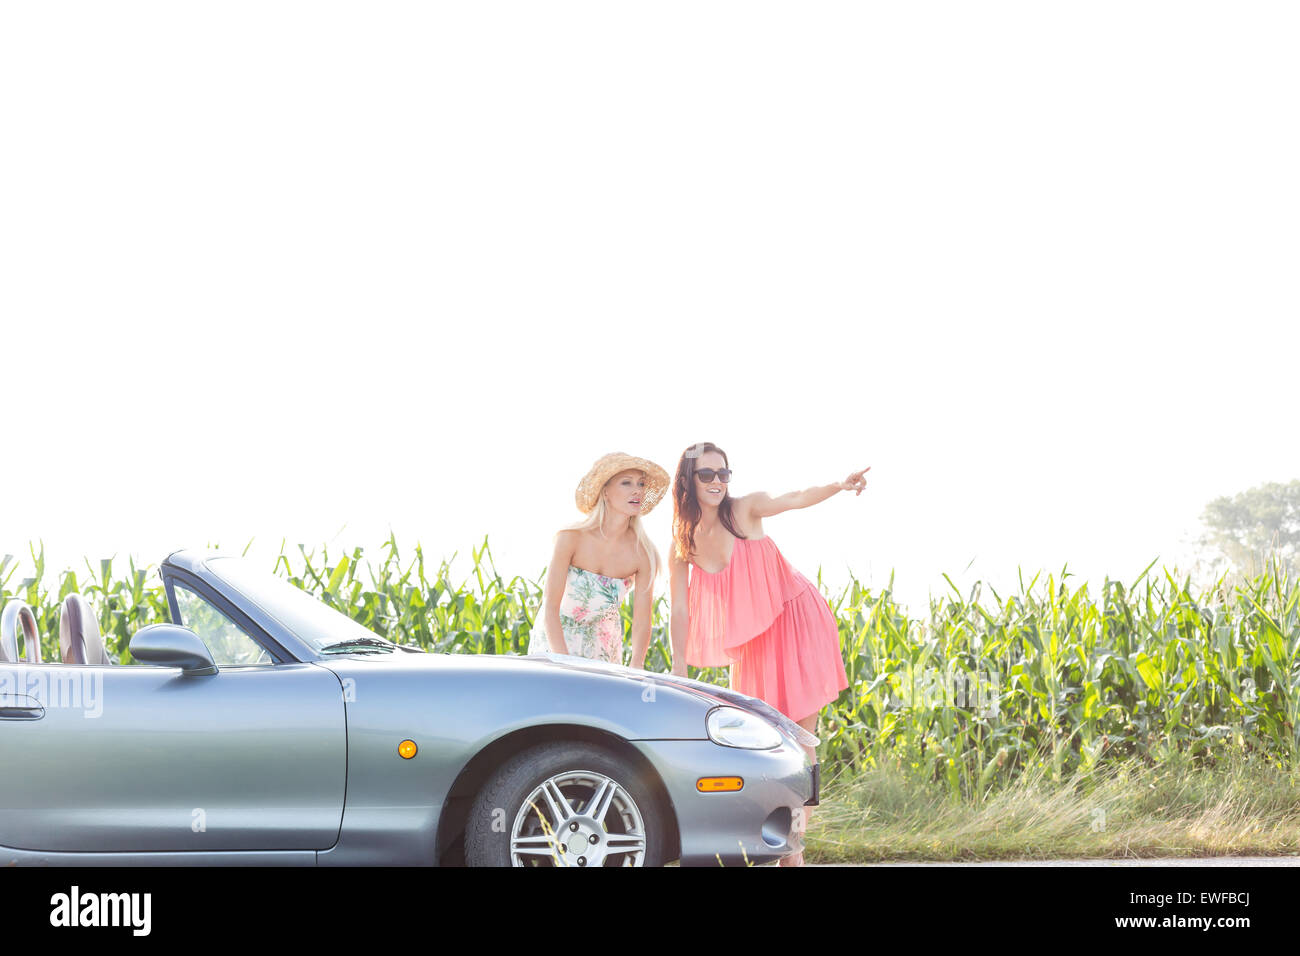 Woman showing something to female friend while standing by convertible - Stock Image